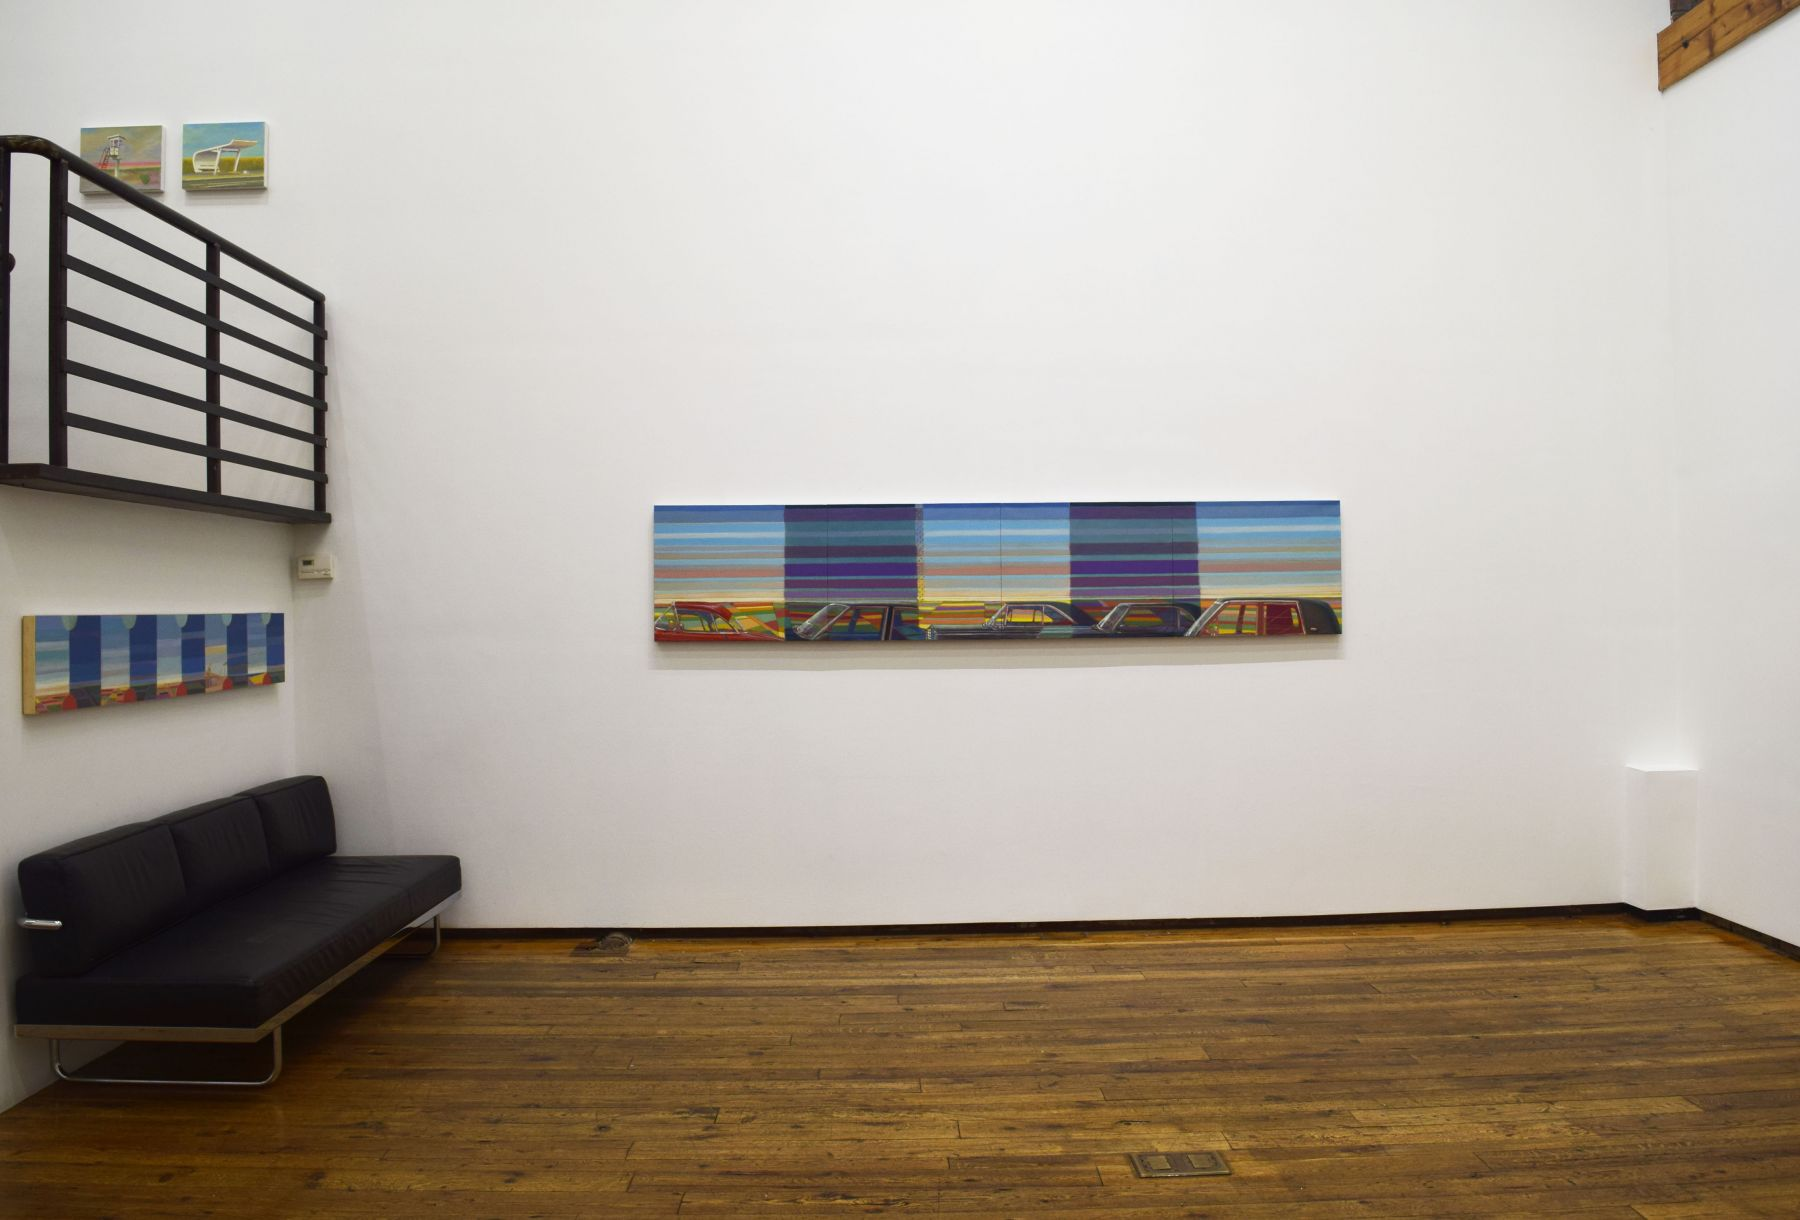 Installation view of Greg Drasler, Crowded Places/ Open Spaces, 2021.